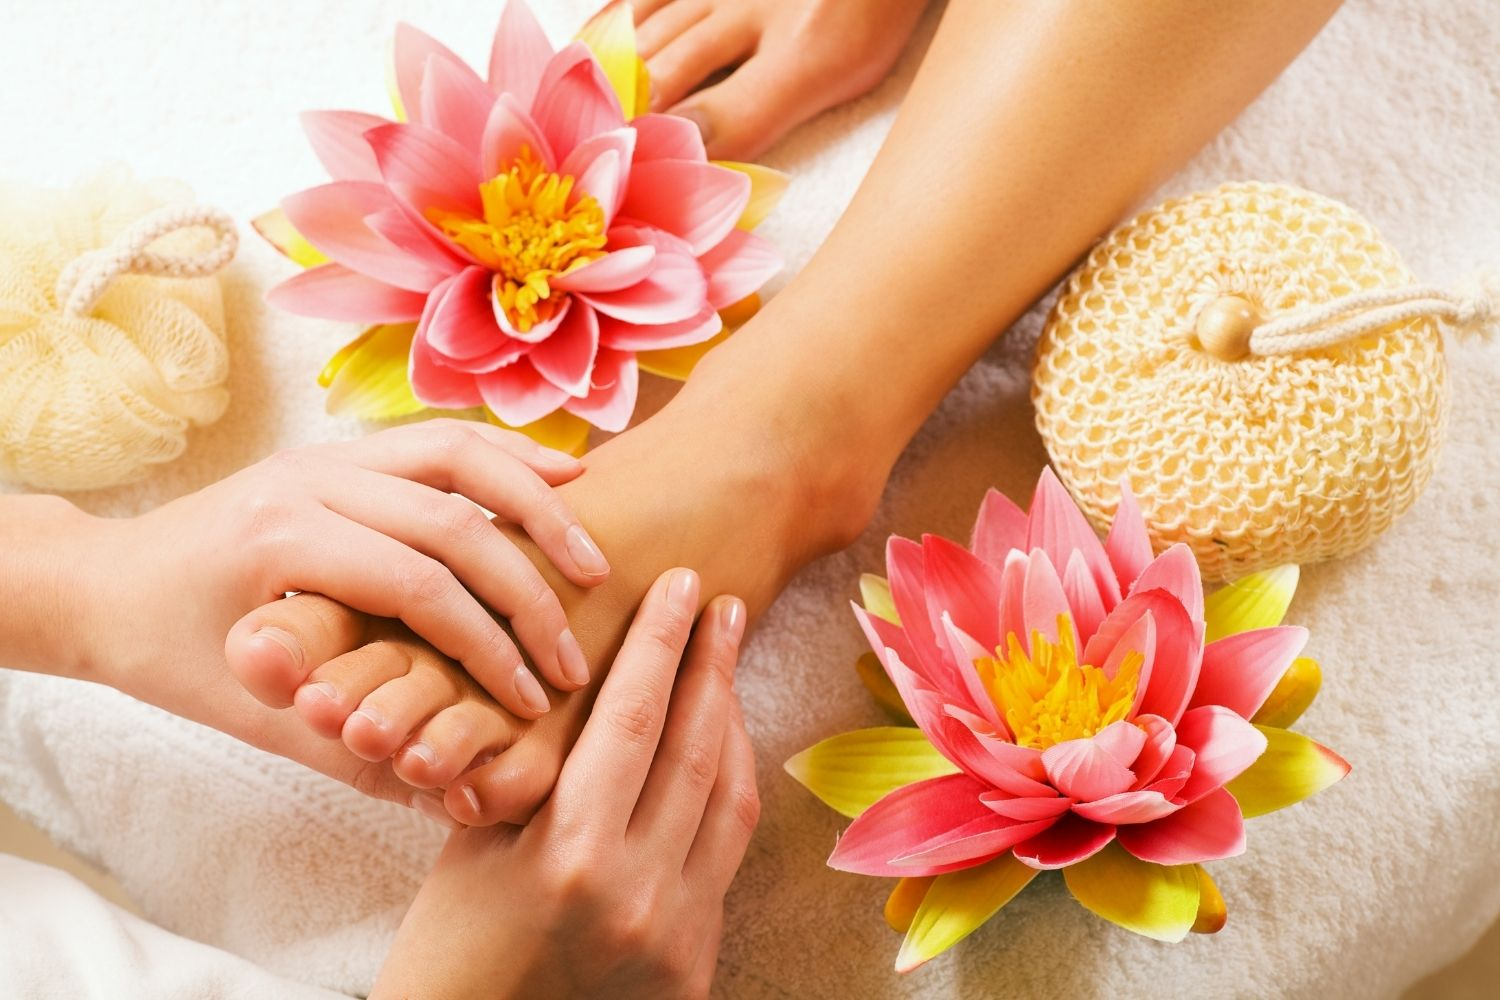 Learn more about reflexology and its benefits